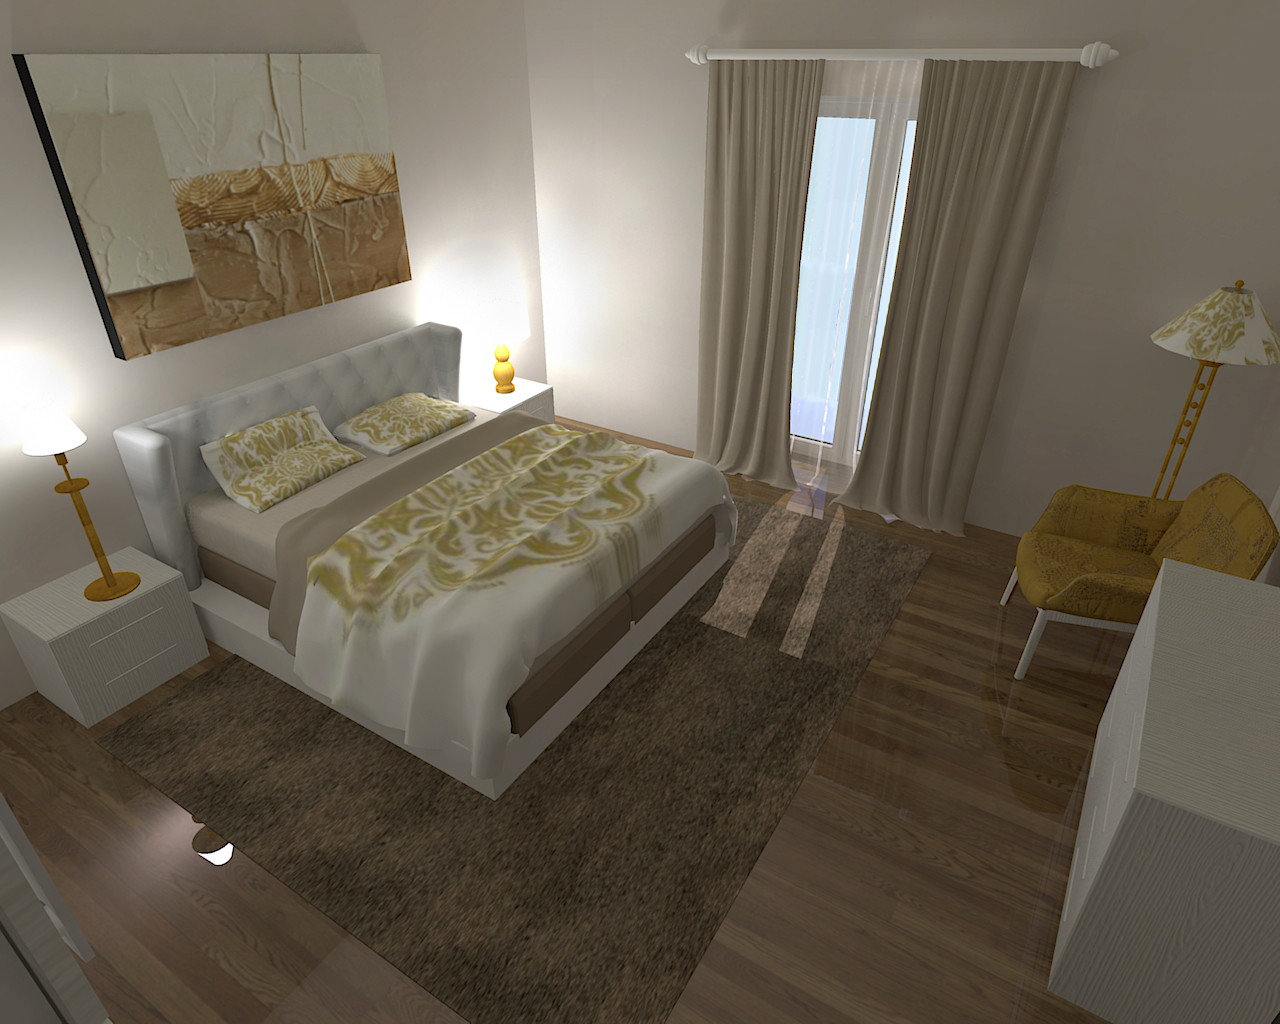 Camera Da Letto Con Parquet. Beautiful Immagine Di Una Piccola ...